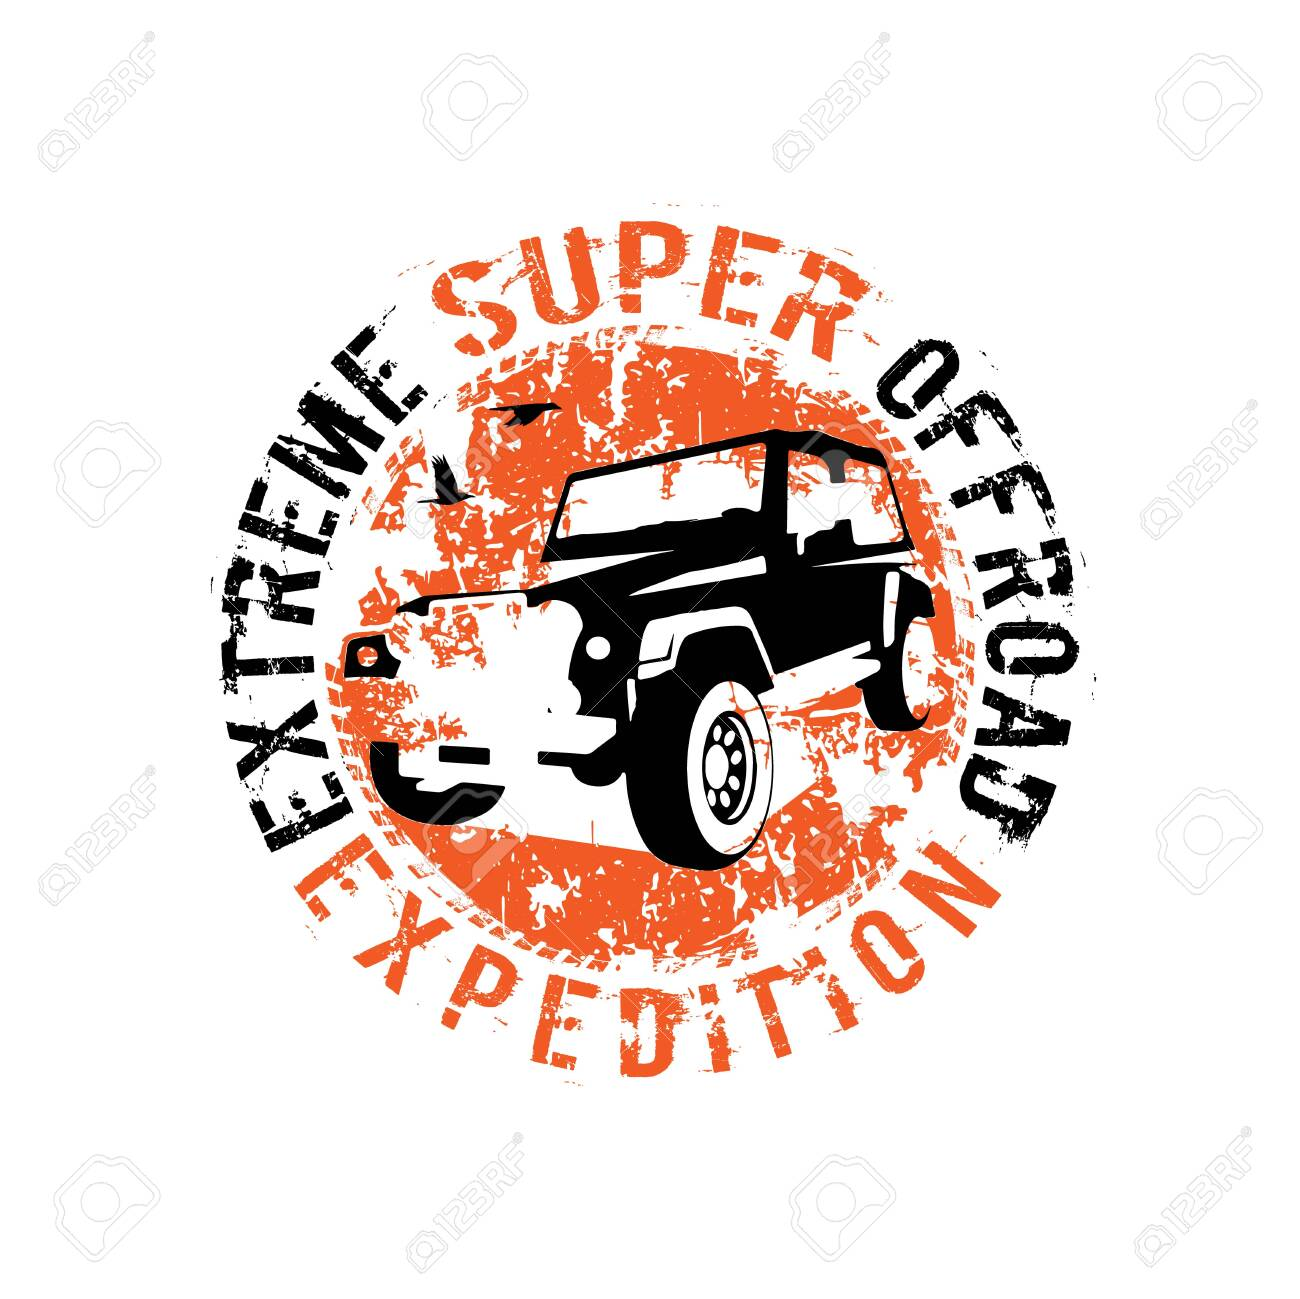 Off Road 4x4 Logo Extreme Competition Emblem Off Roading Suv Royalty Free Cliparts Vectors And Stock Illustration Image 123560016